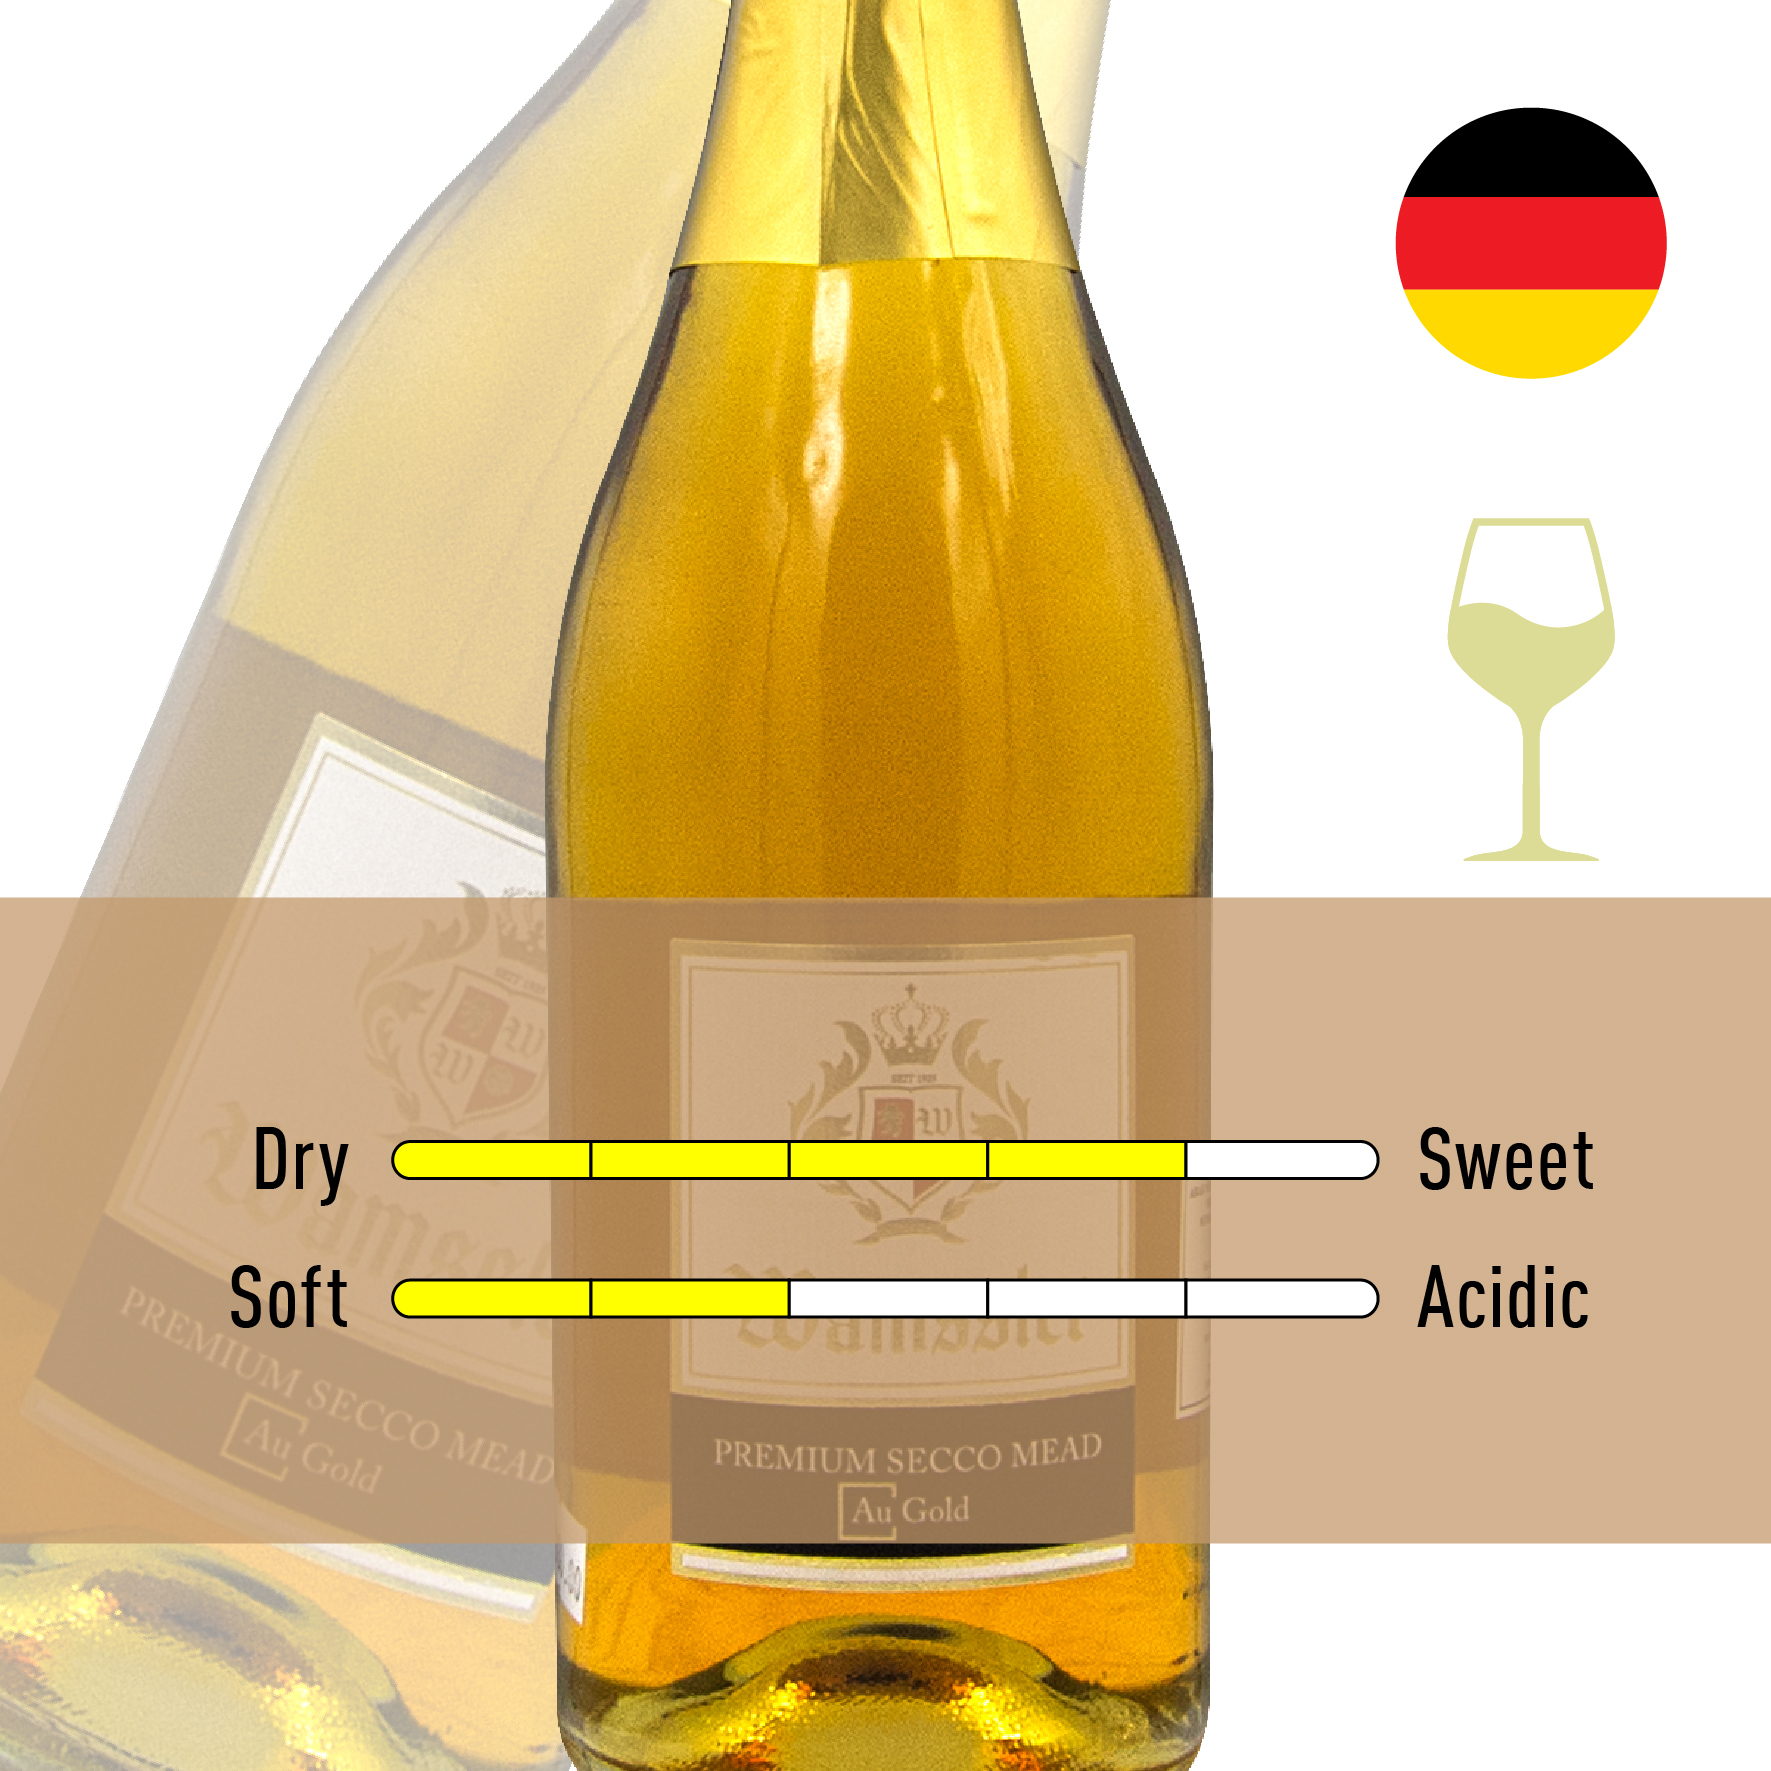 3-Wamssler Finest Secco Mead Mitternacht's Gold (Au Gold)-Germany-02.jpg